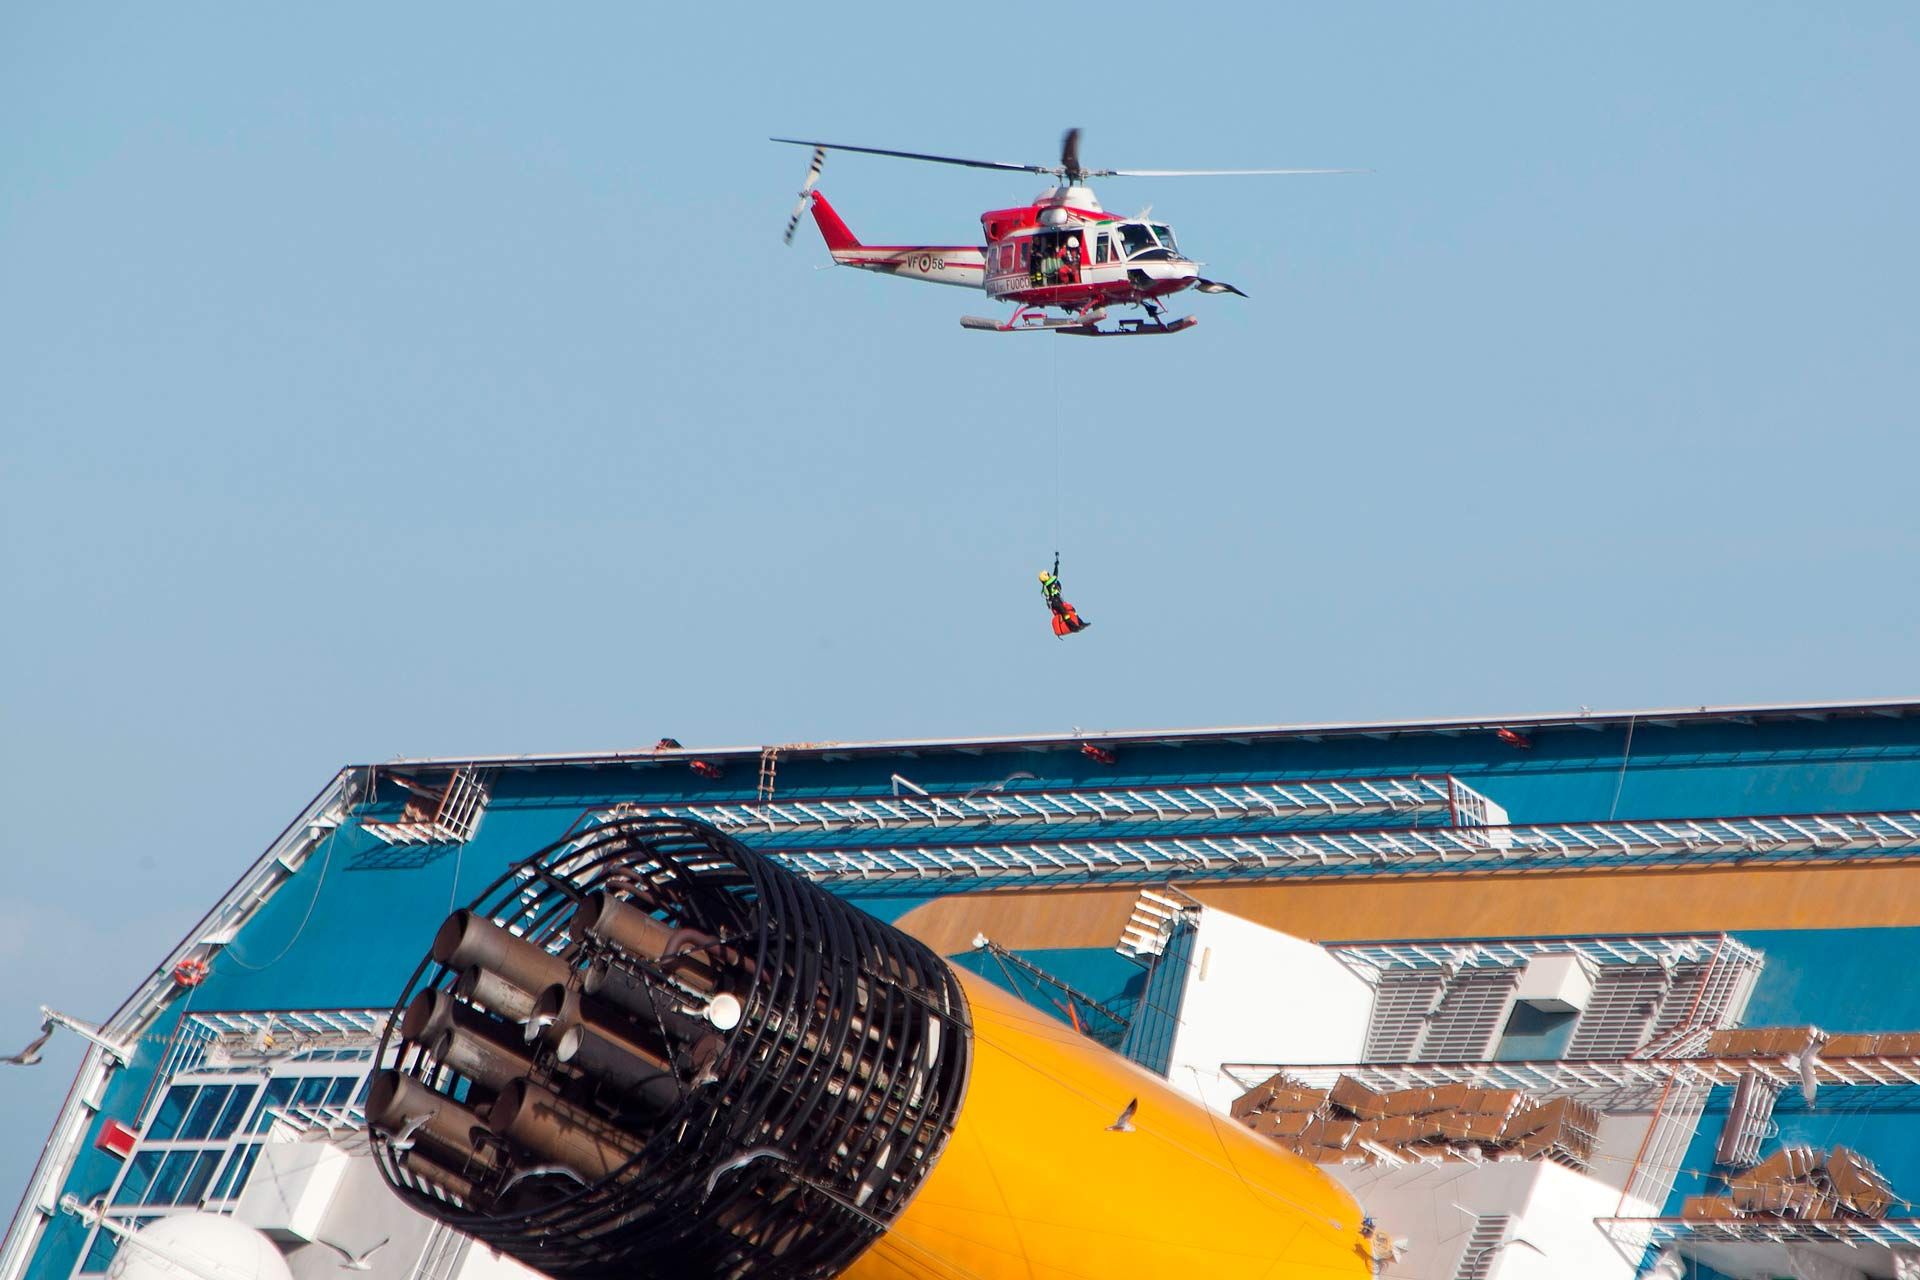 The work of the rescuers went on for several days at an incessant pace. Access to the wreck took place both by water and by air from the fire brigade helicopters.